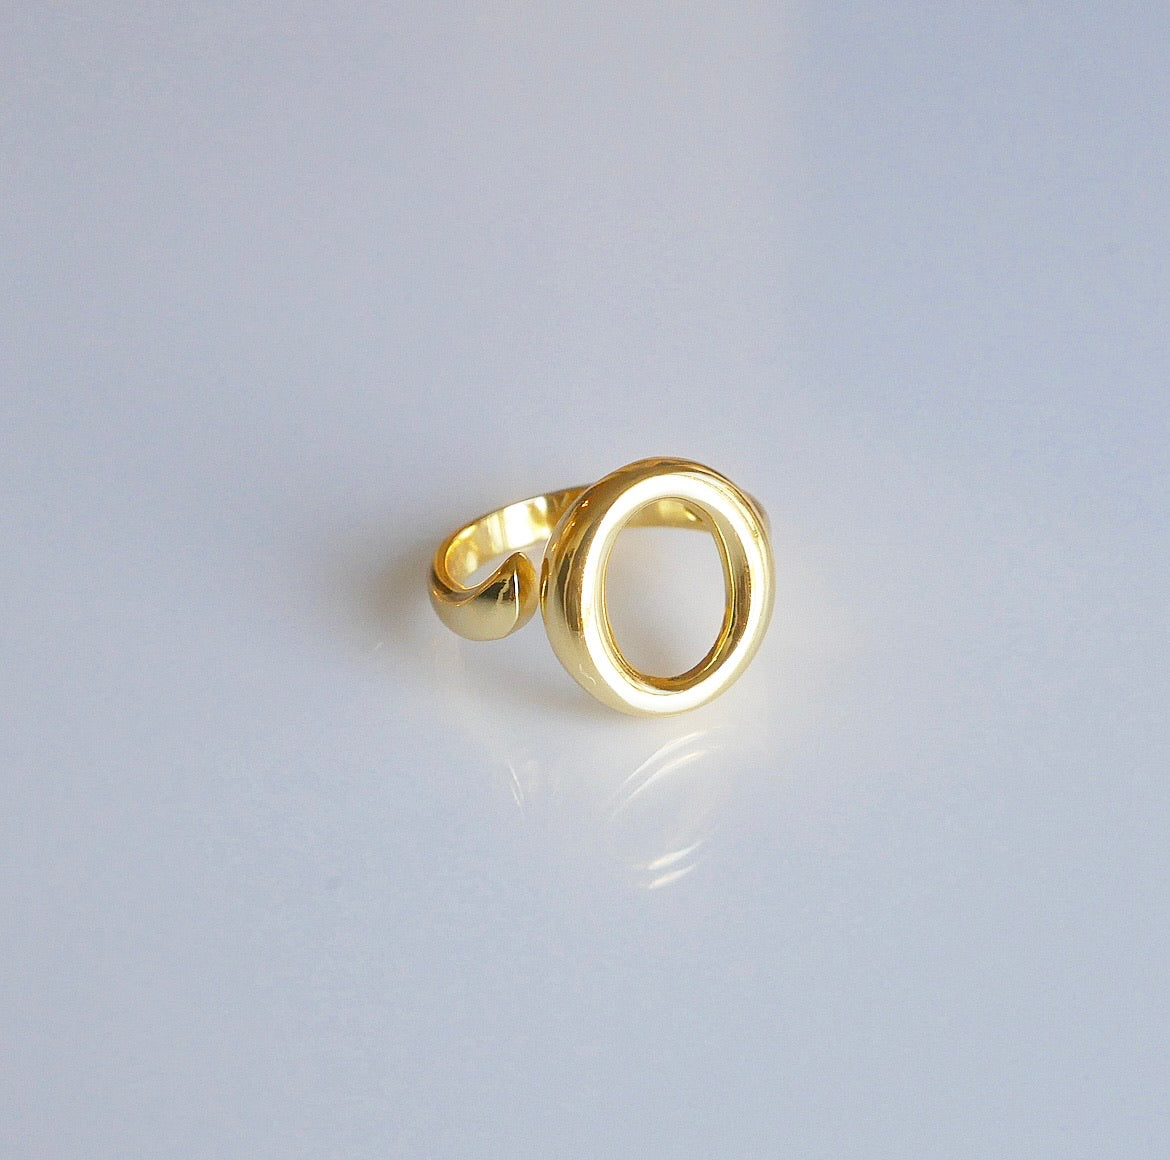 Golden Open Circle Adjustable Ring